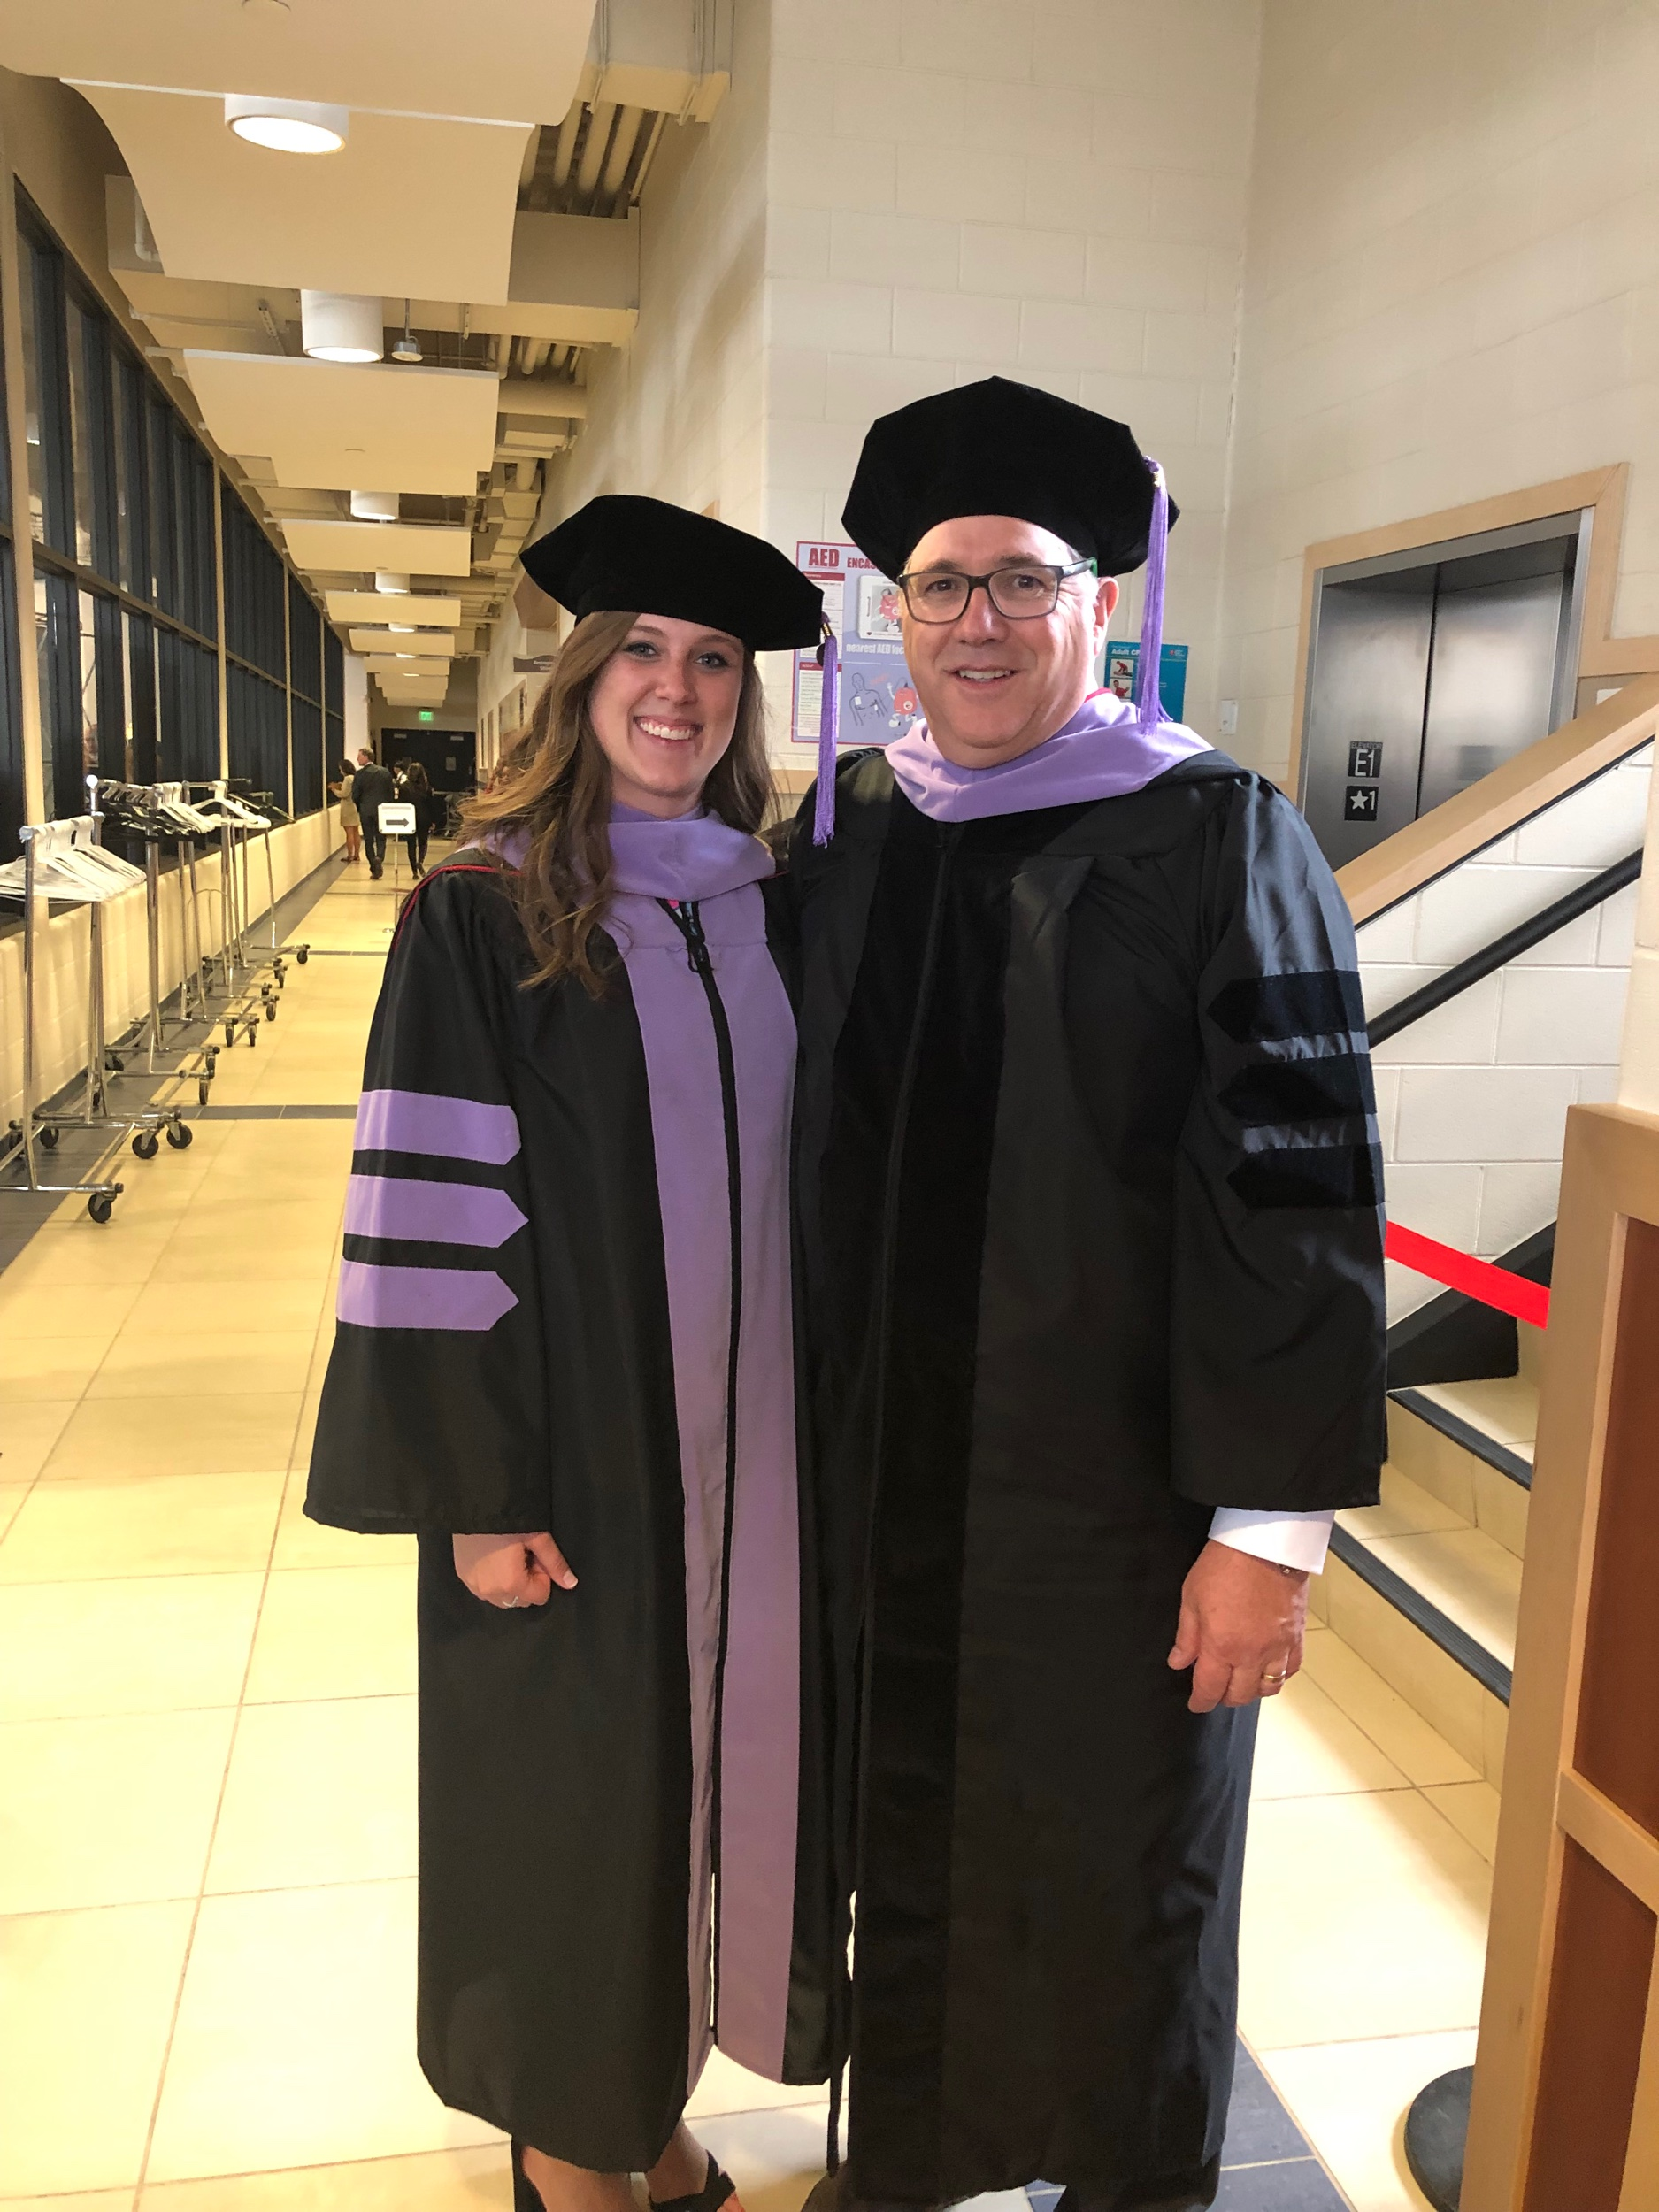 Dr Thornley was honored to participate in the hooding ceremony for Kelly, as her mentor.